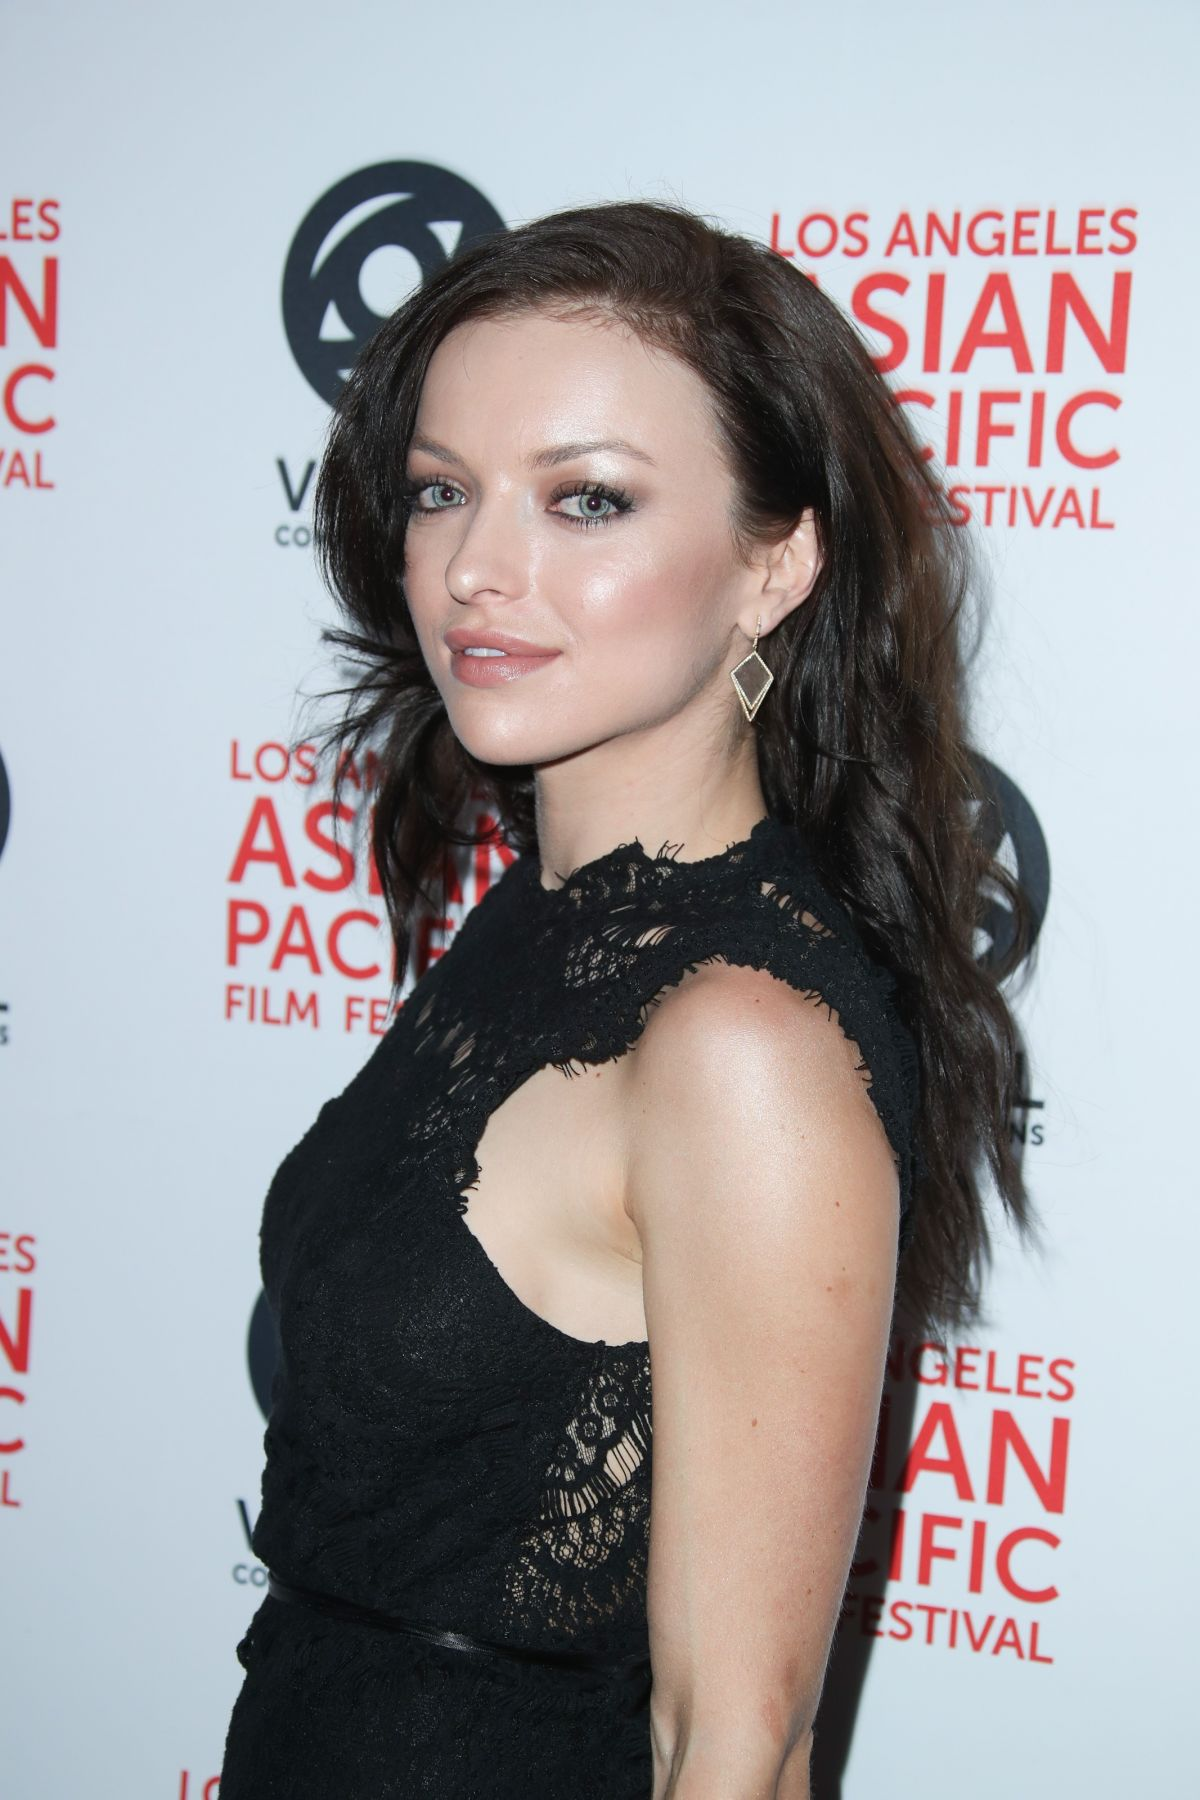 Francesca Eastwood nudes (89 pictures) Topless, iCloud, braless